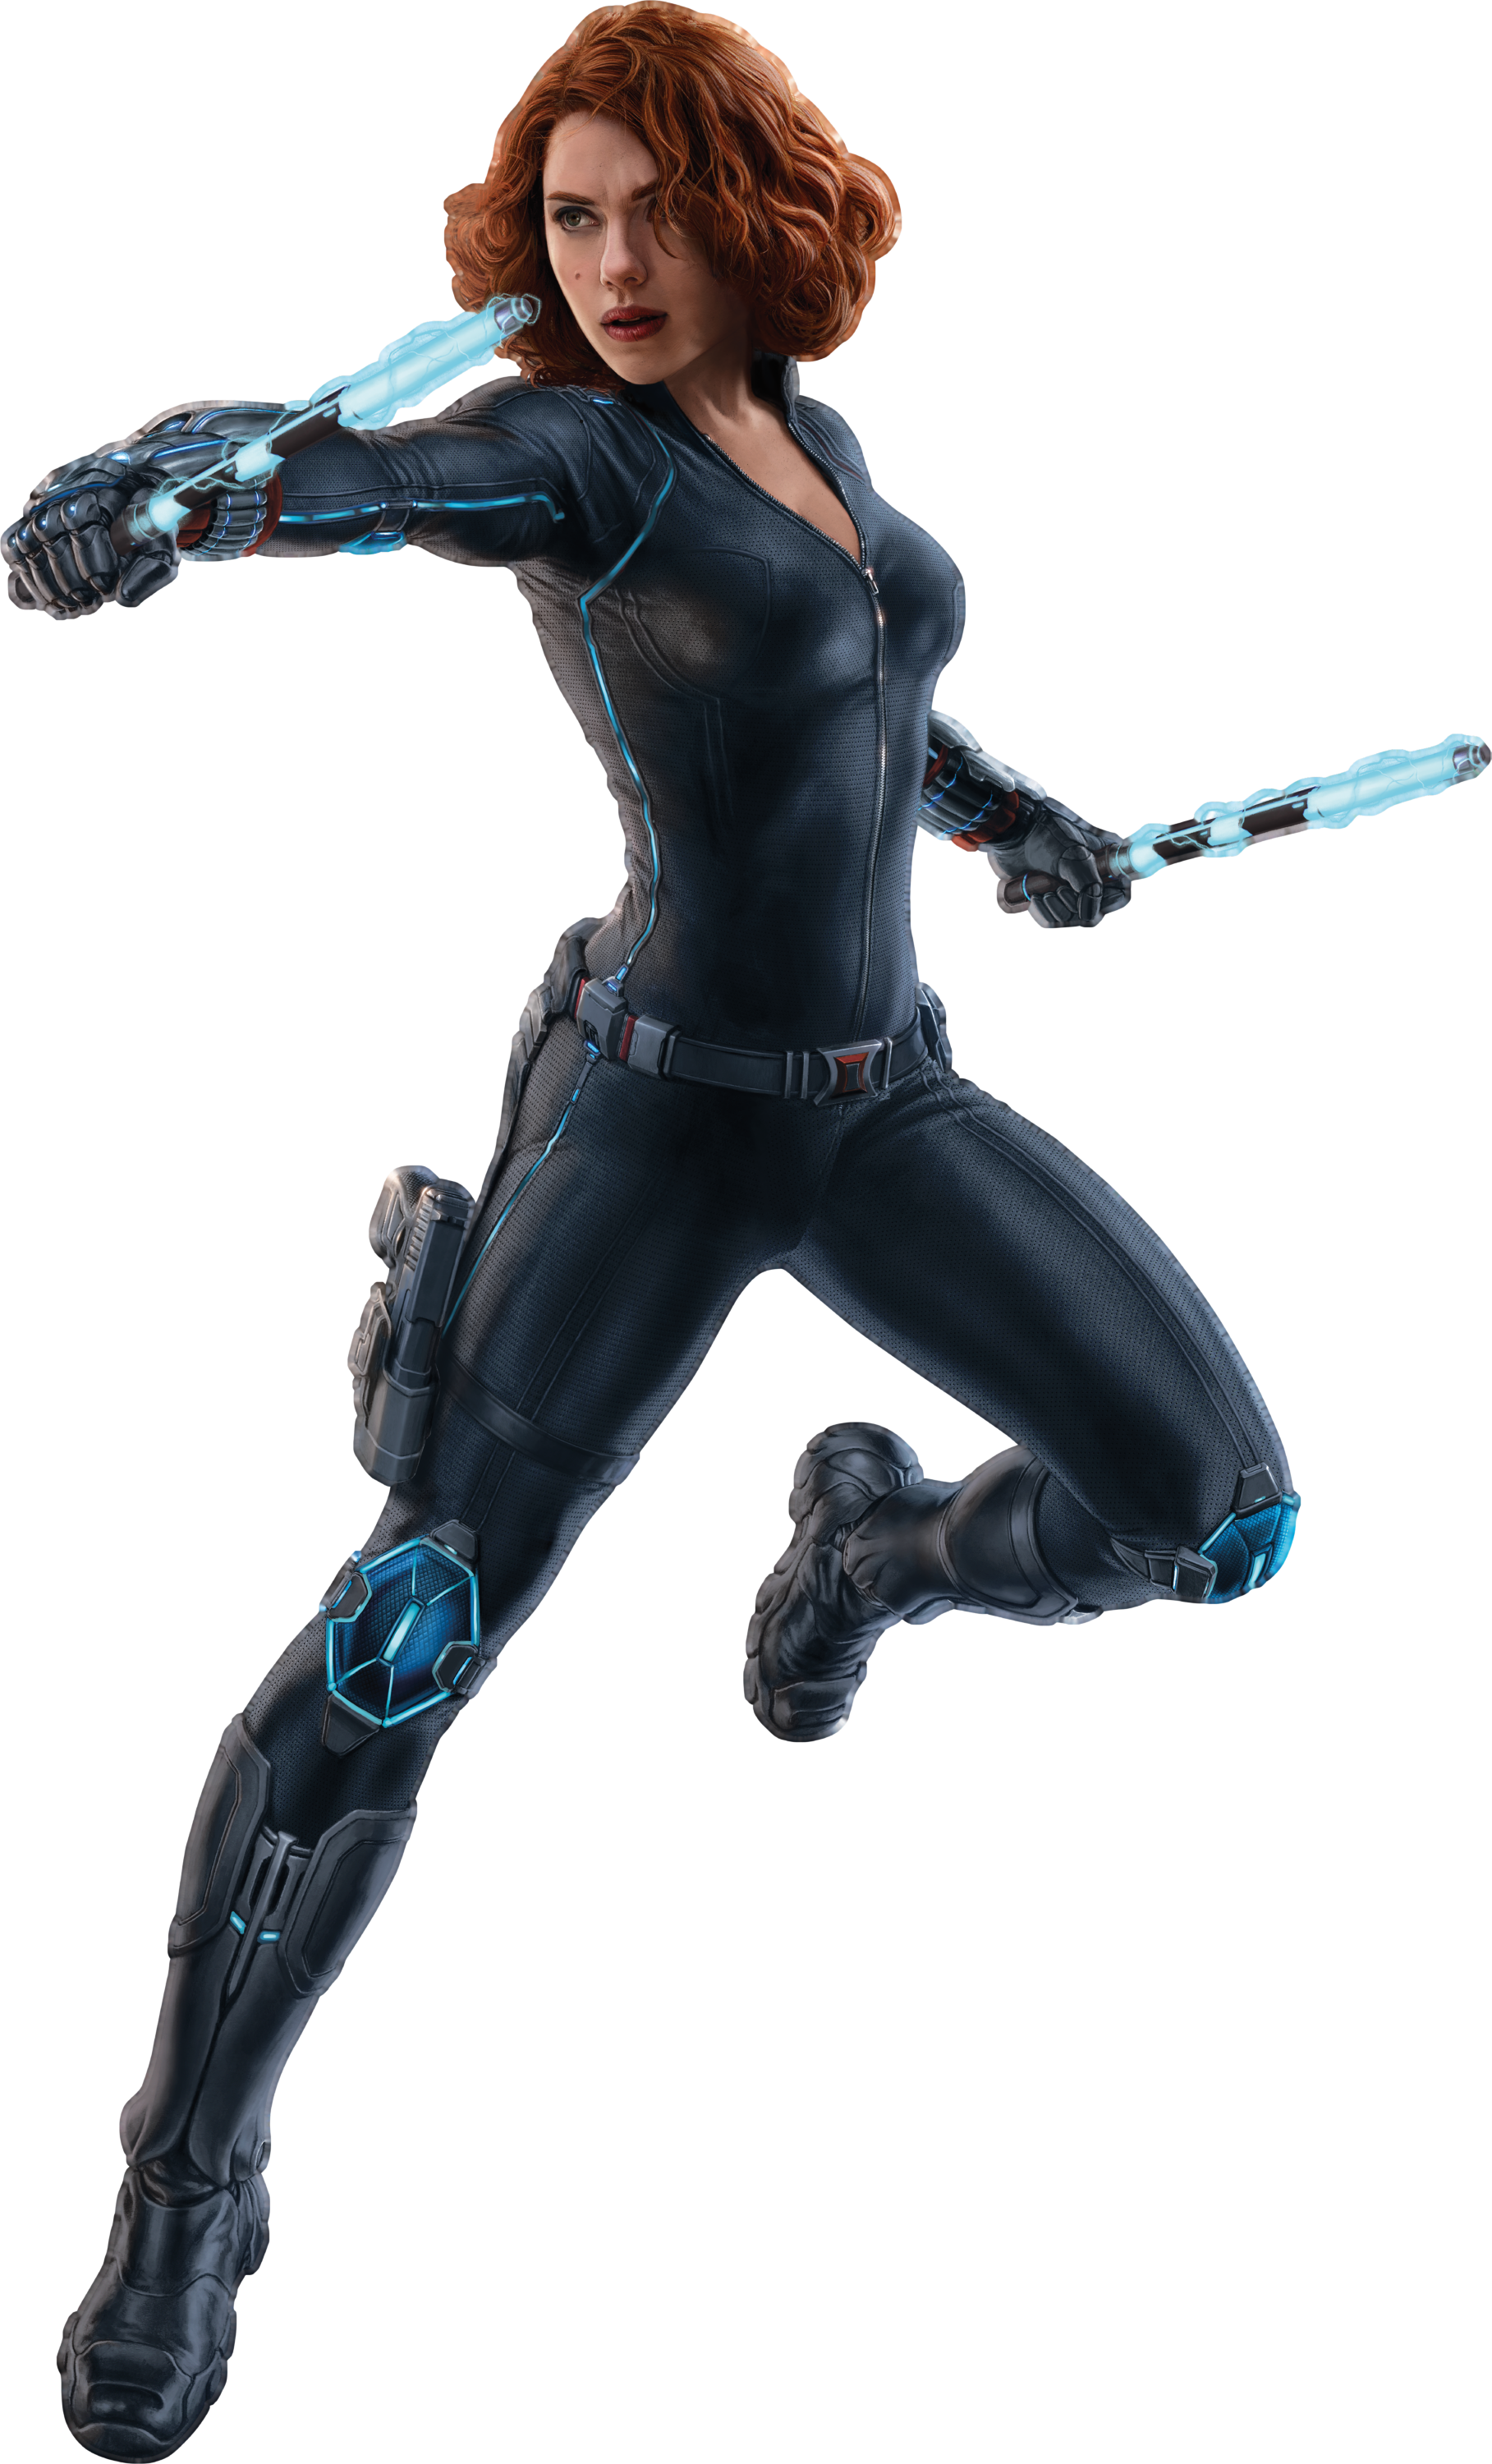 Image - Black-Widow-AOU-Render.png | Marvel Cinematic Universe Wiki |  FANDOM powered by Wikia - Black Widow PNG